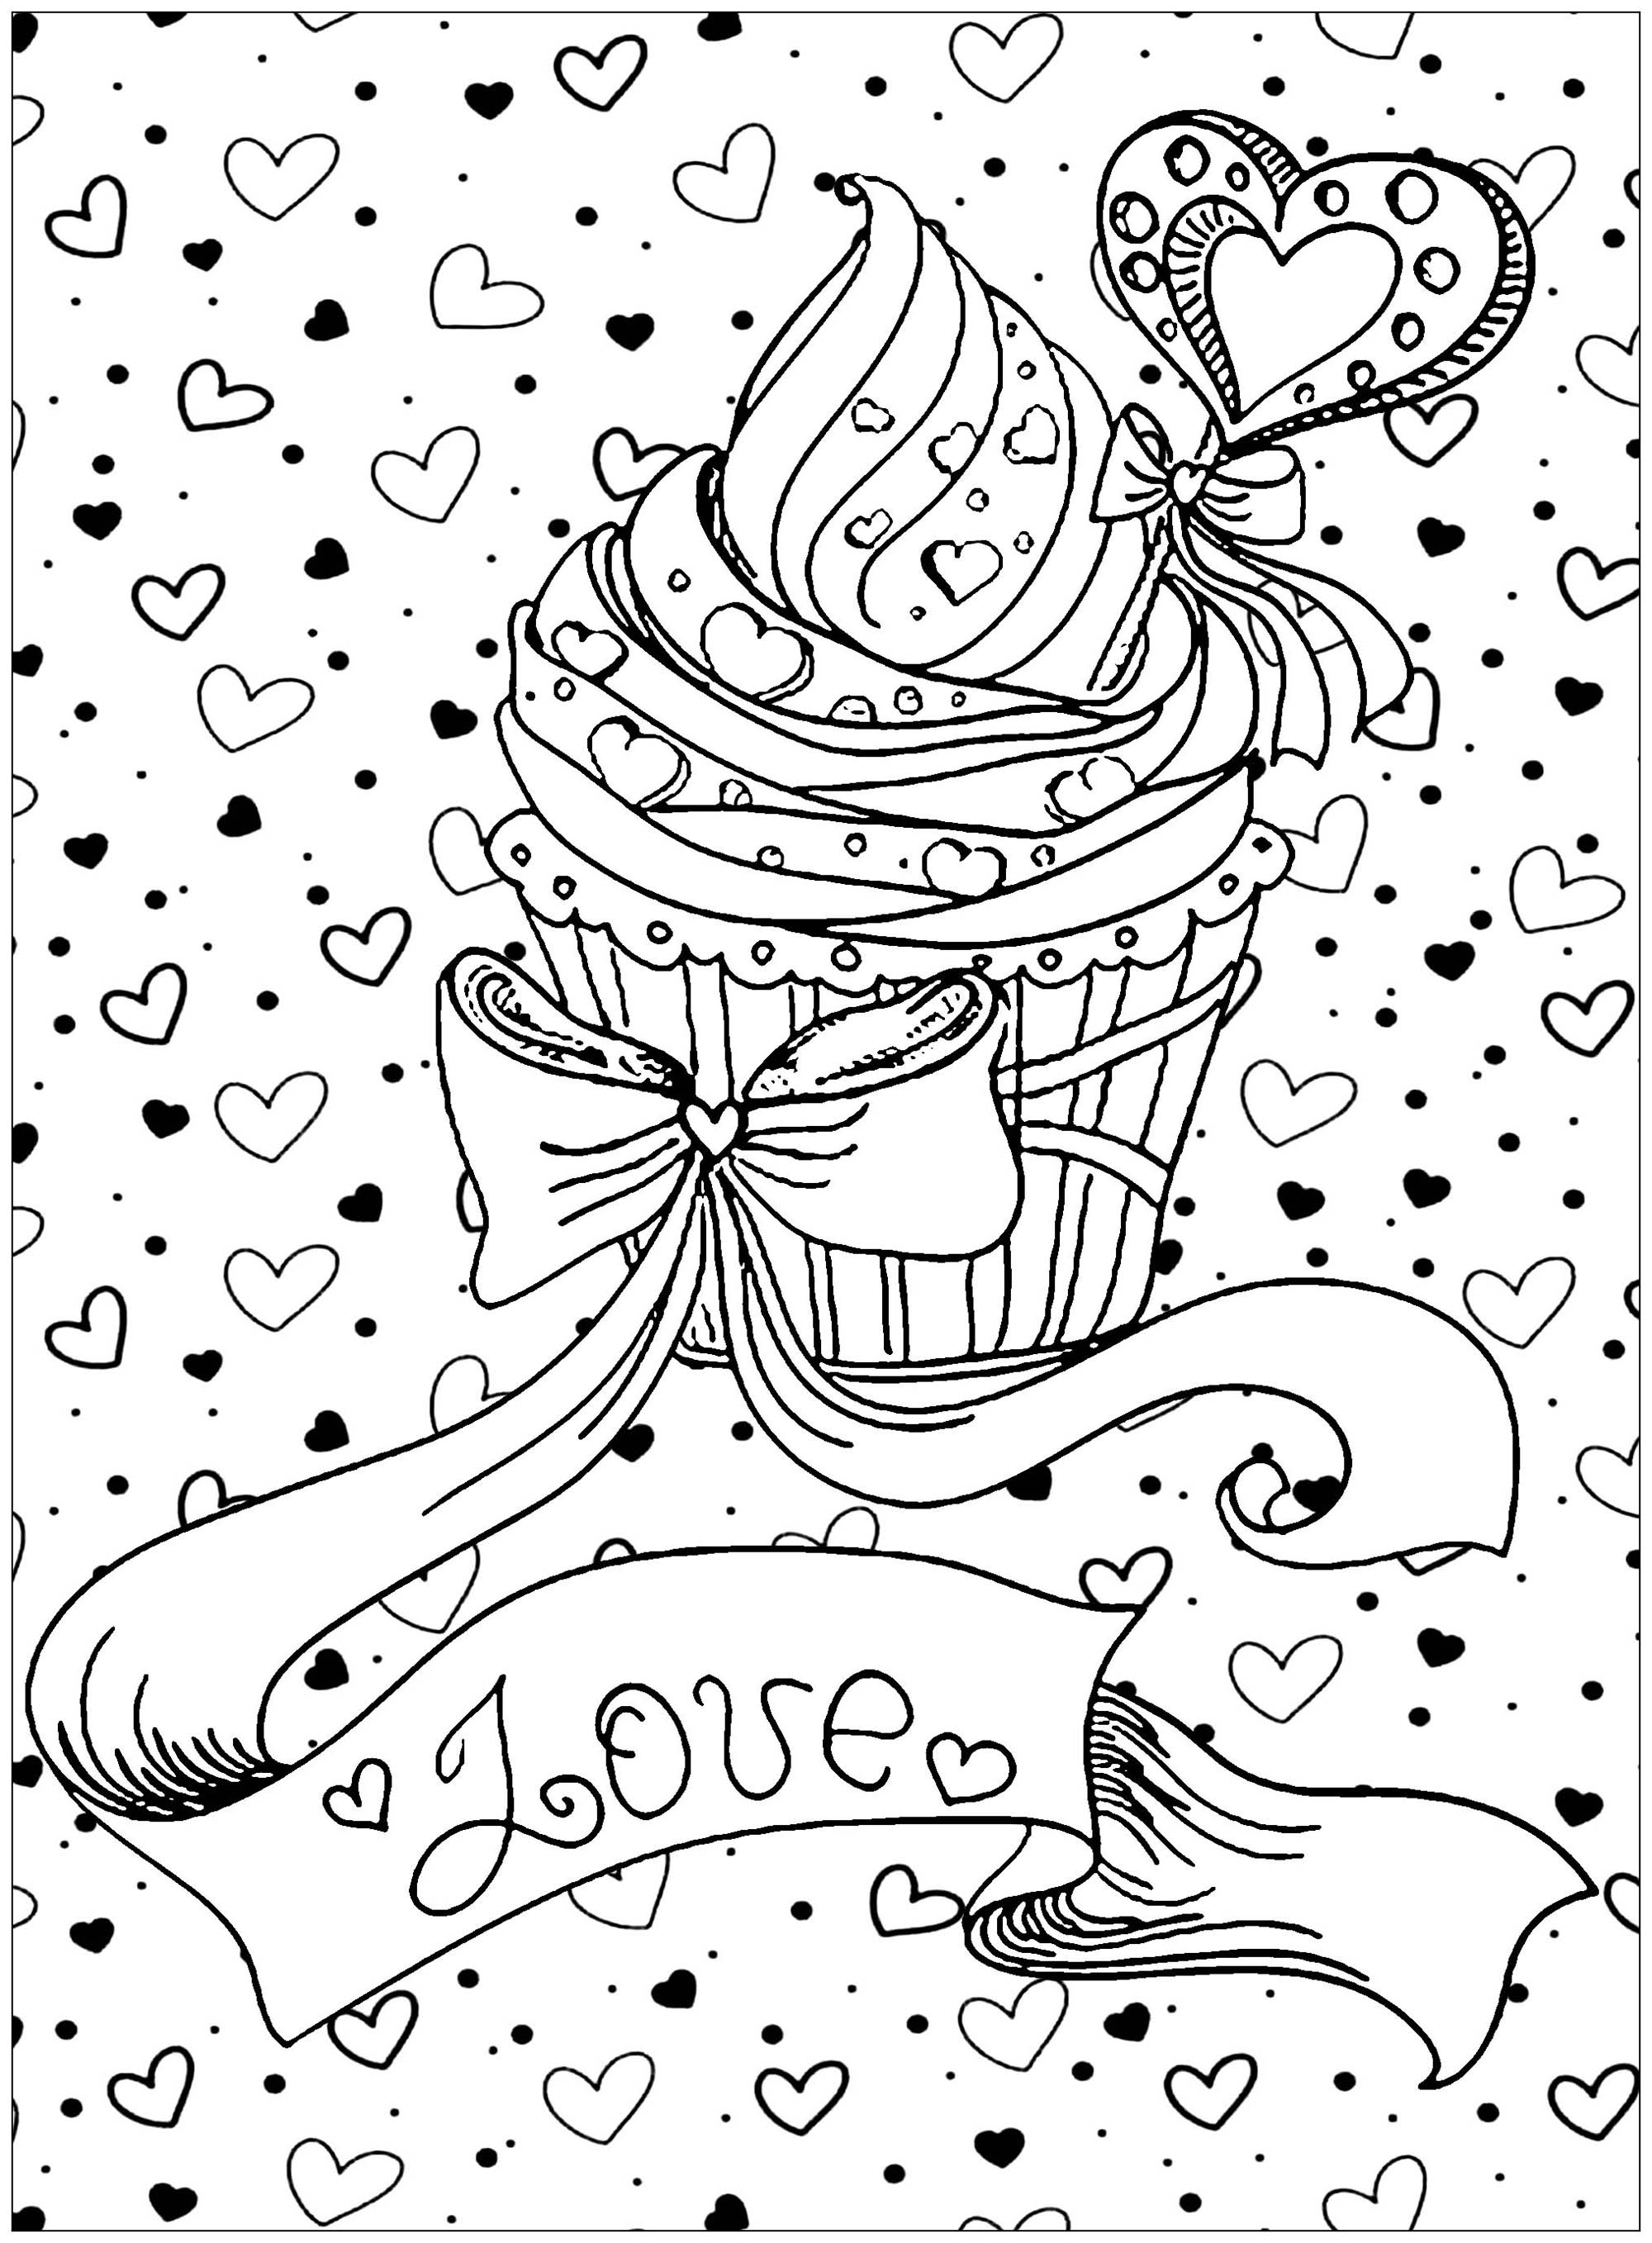 Heart - Coloring Pages for Adults